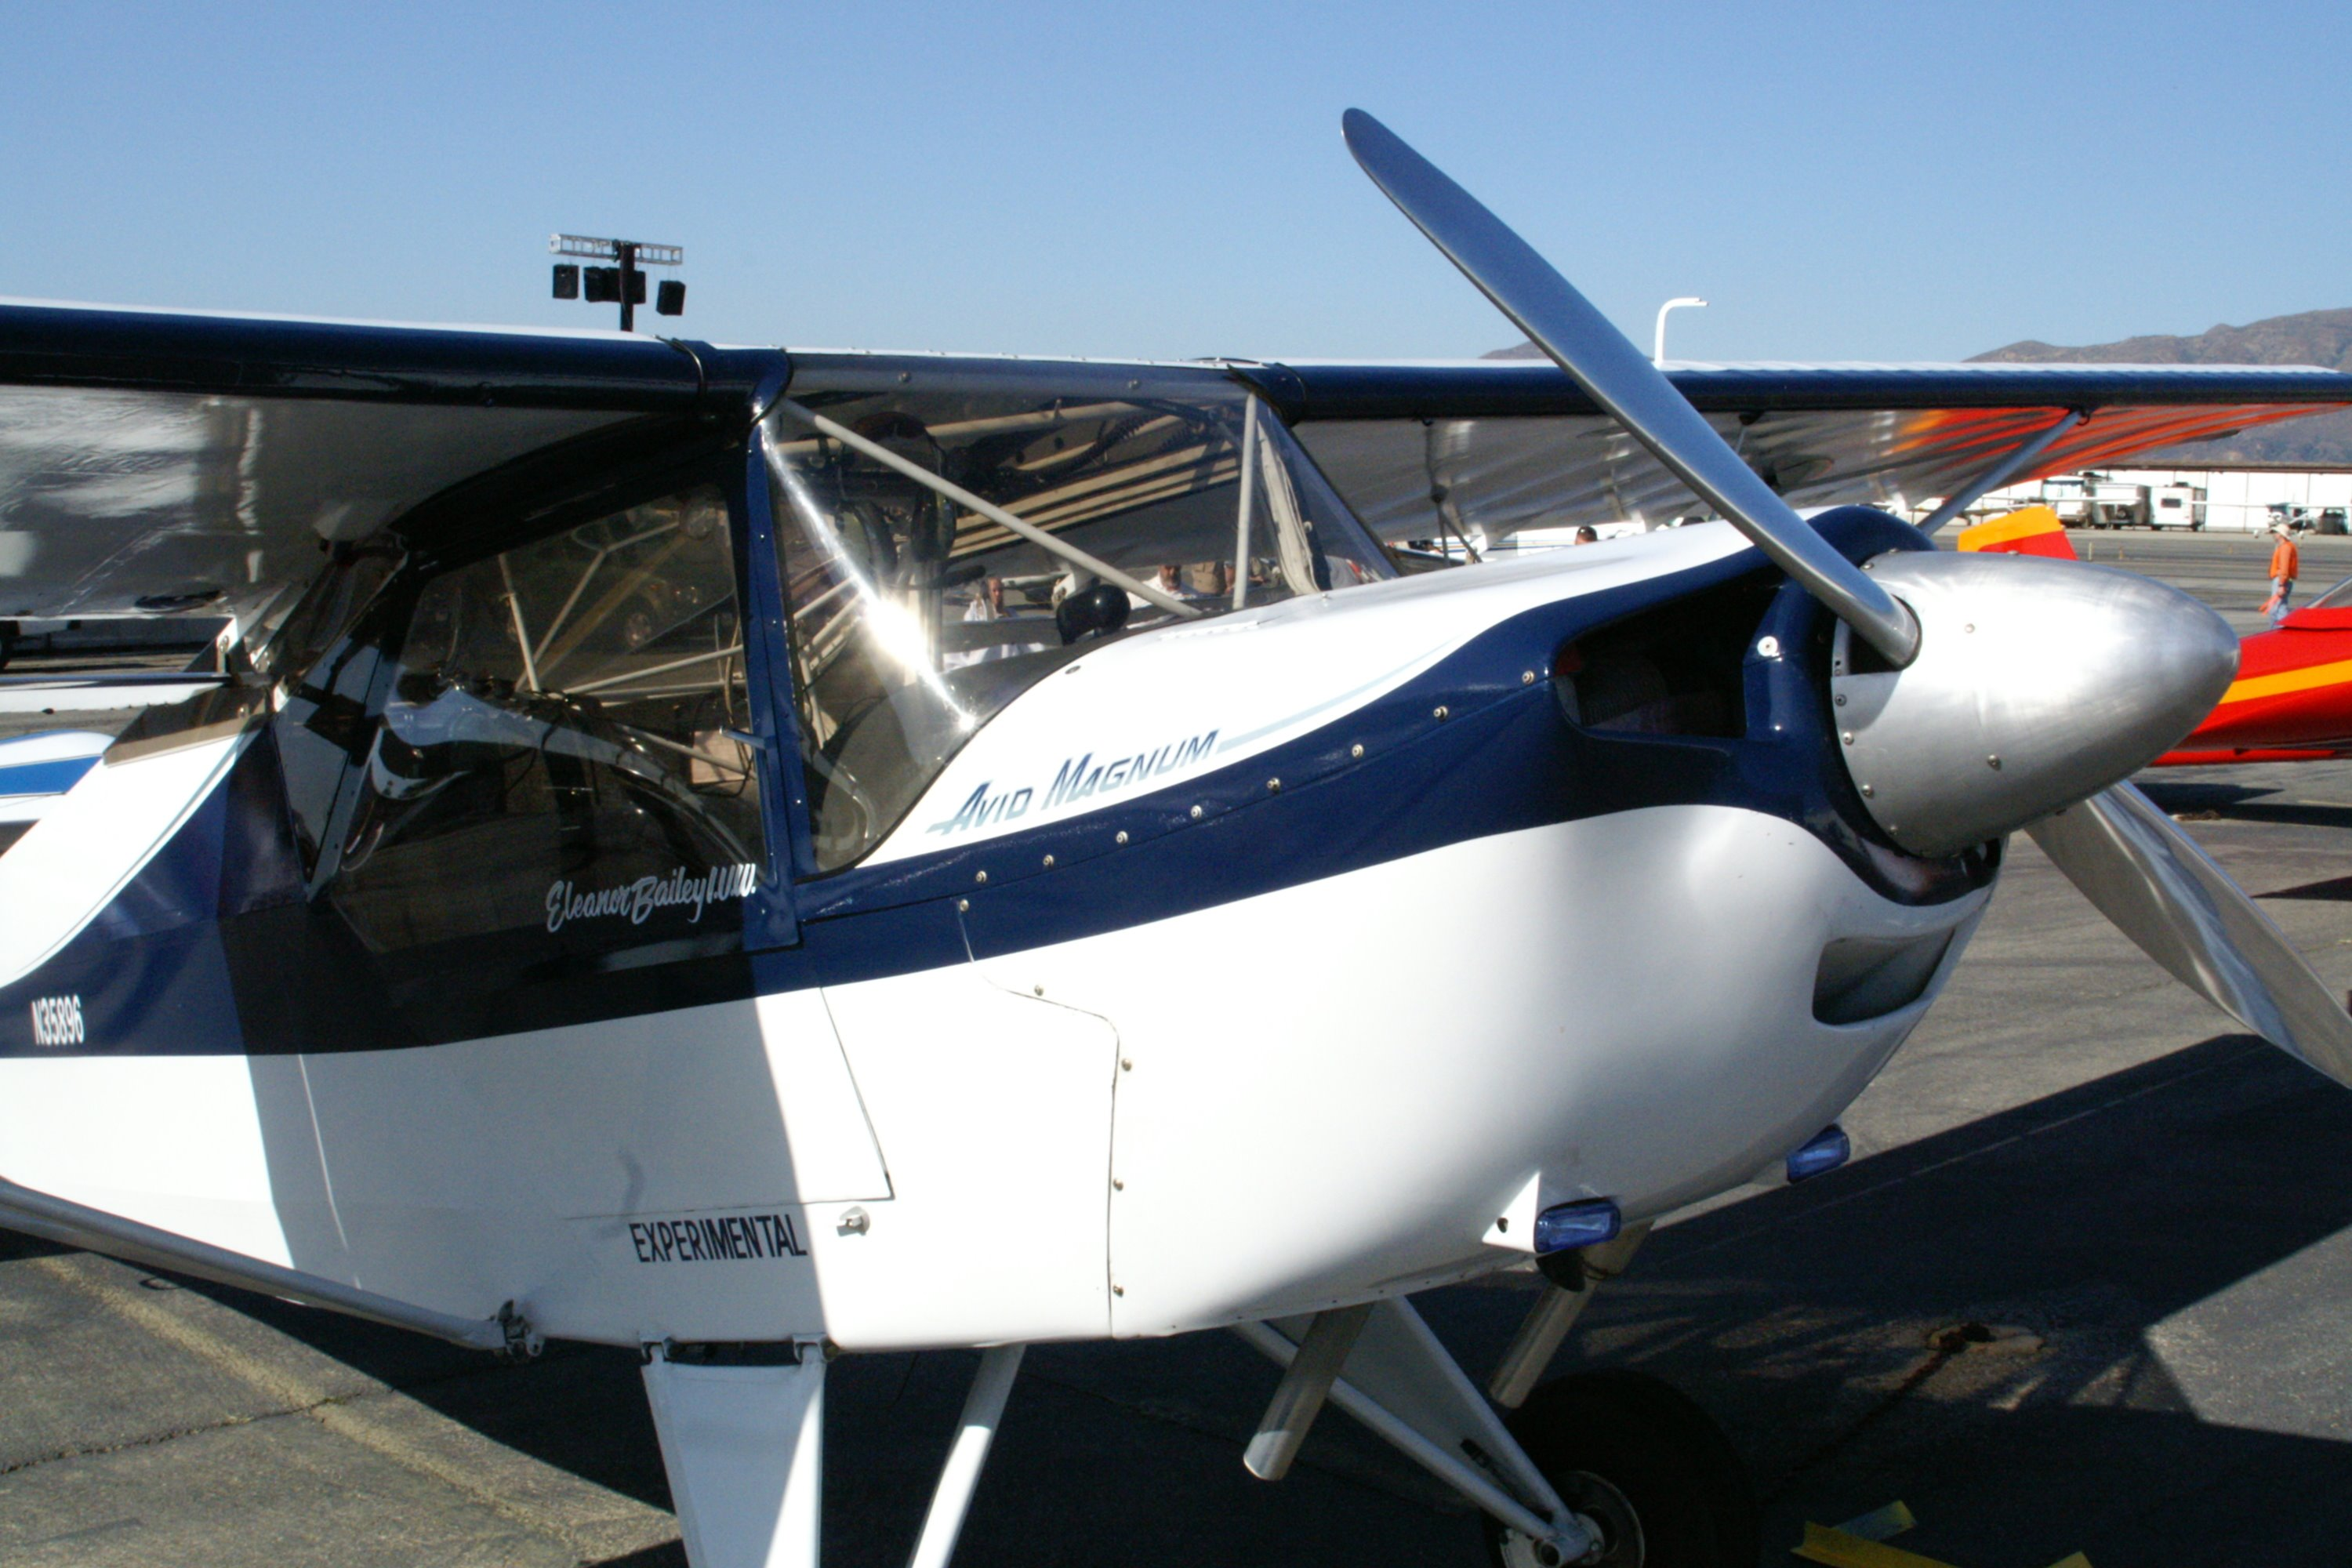 Avid Magnum Single Engine Two Seat High Wing Kit Built